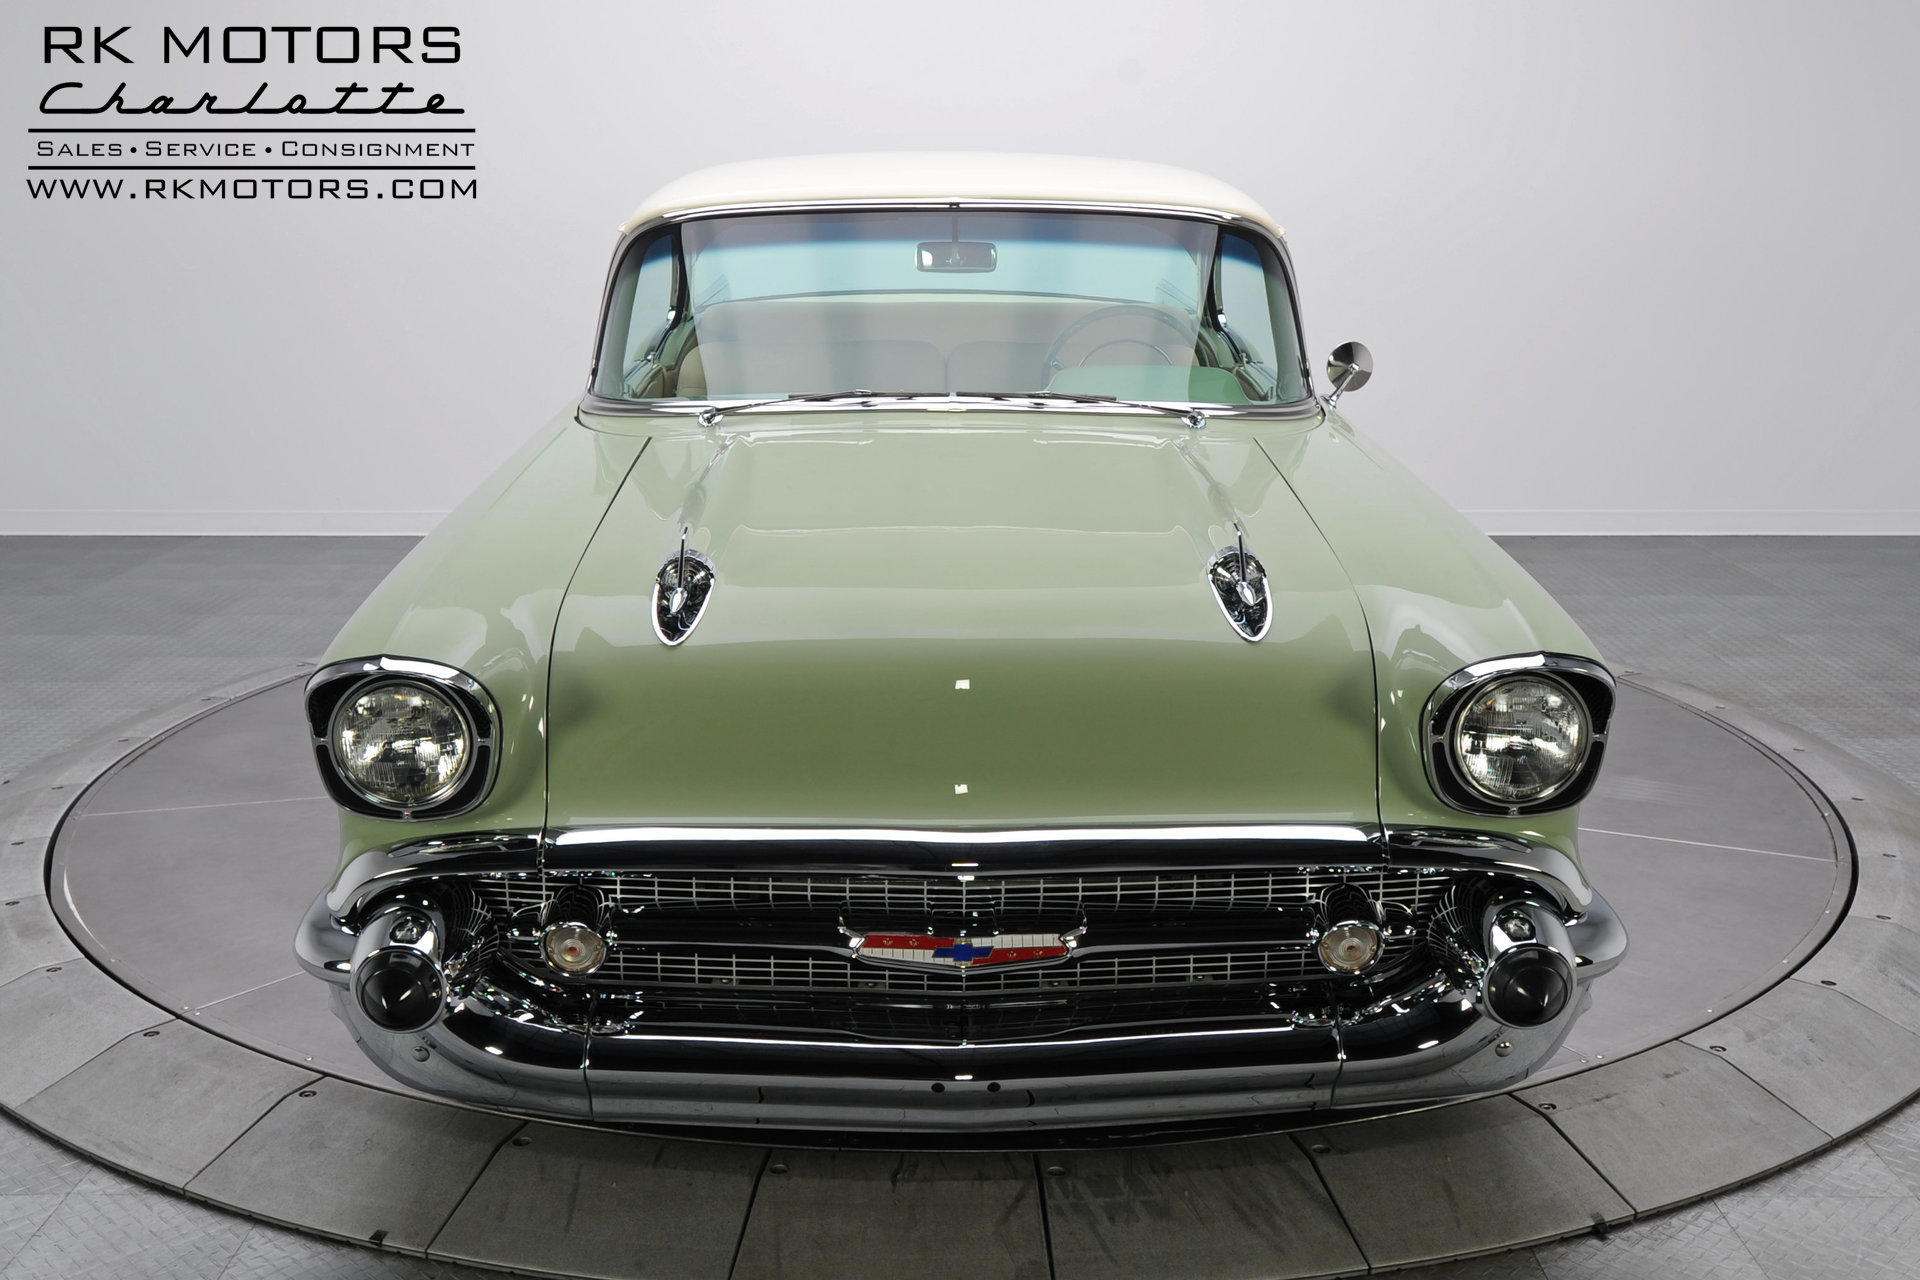 133362 1957 Chevrolet Bel Air Rk Motors Classic And Performance 1966 Value For Sale